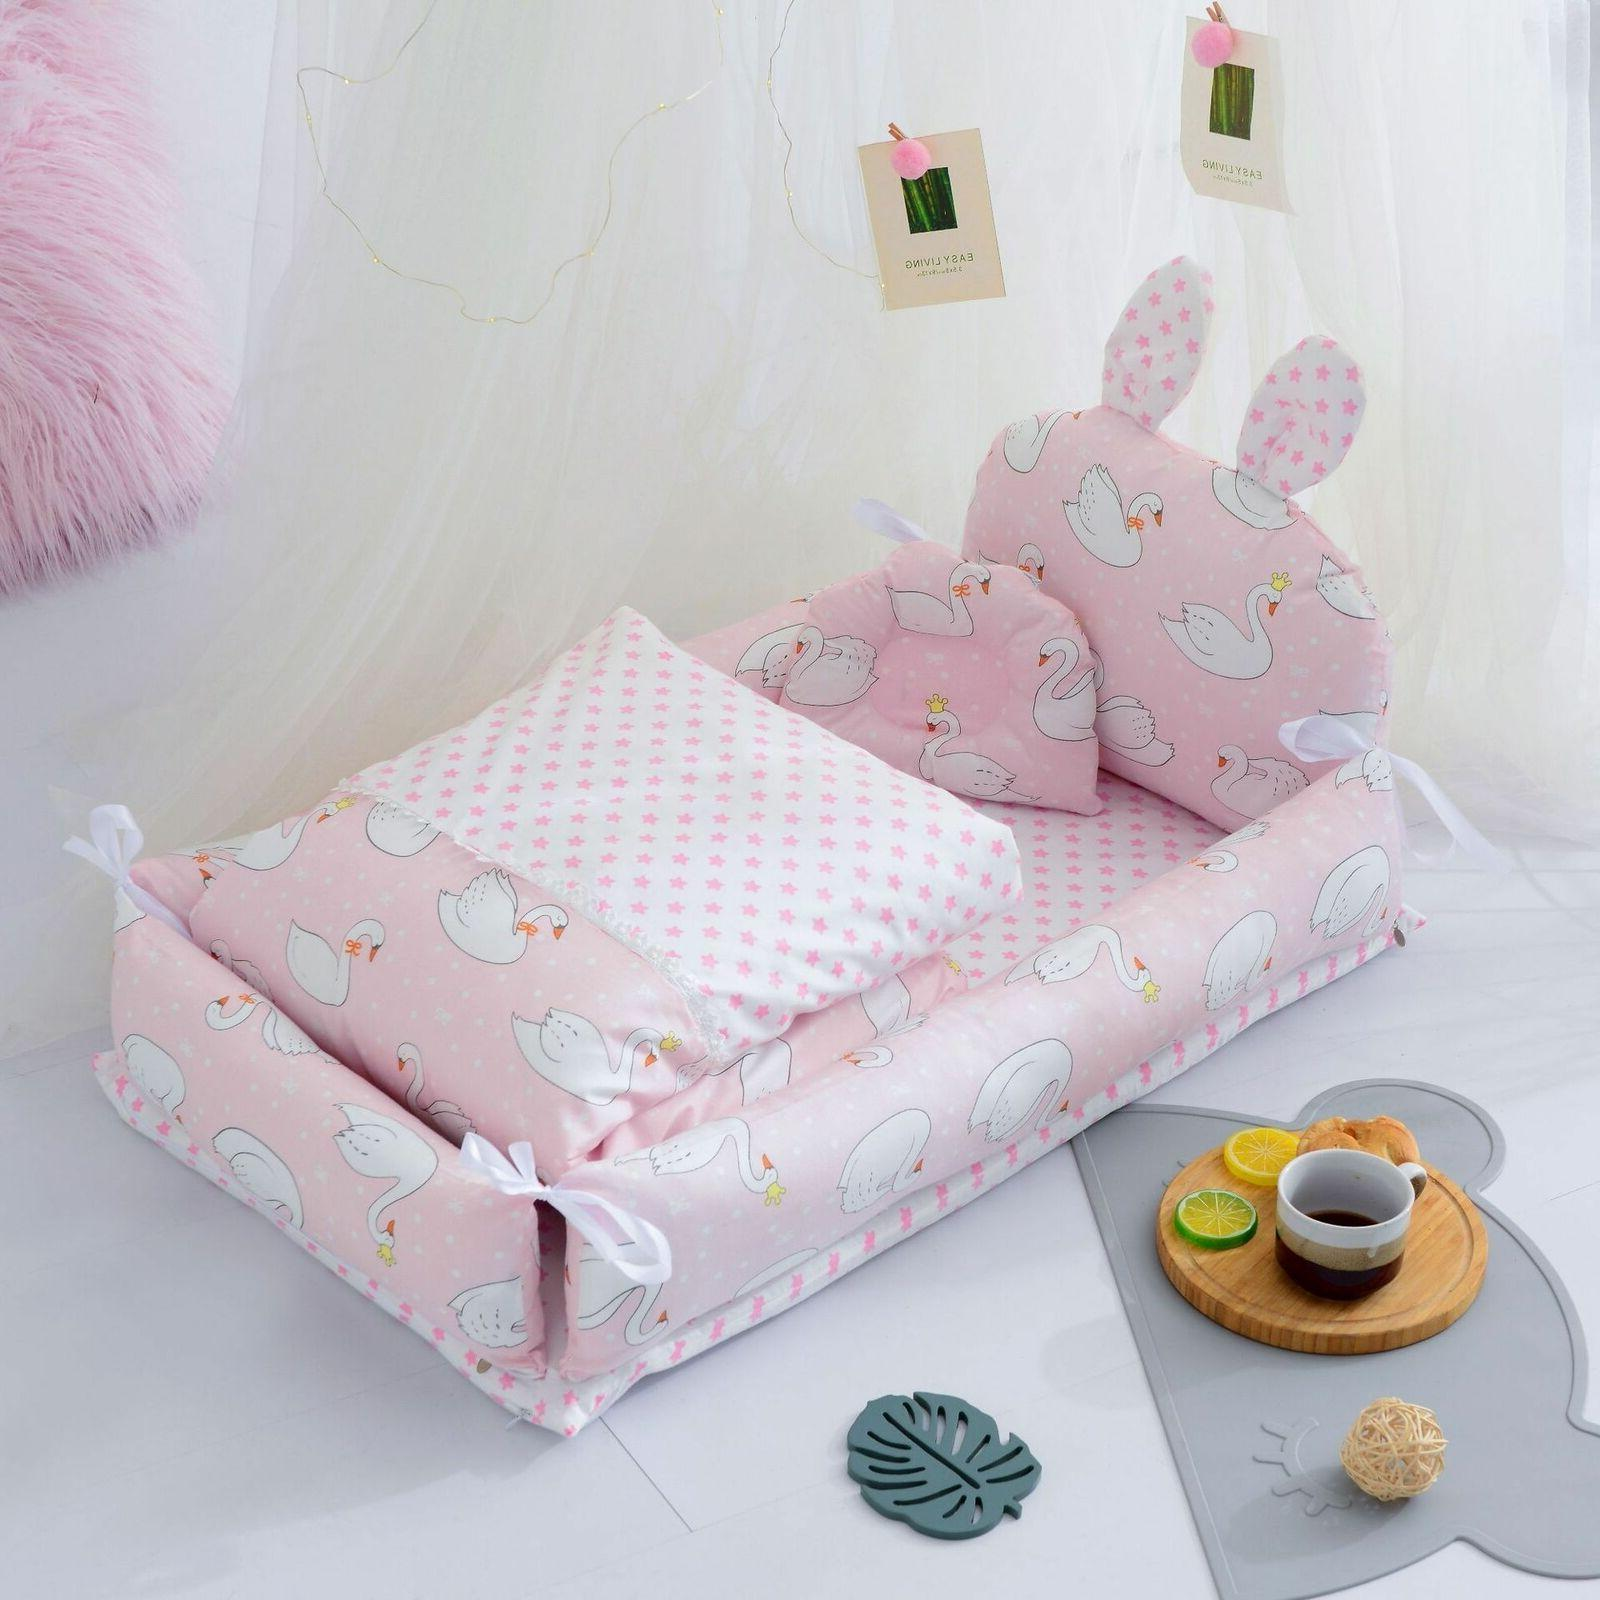 Newborn Nest Lounger Portable Baby Cot With